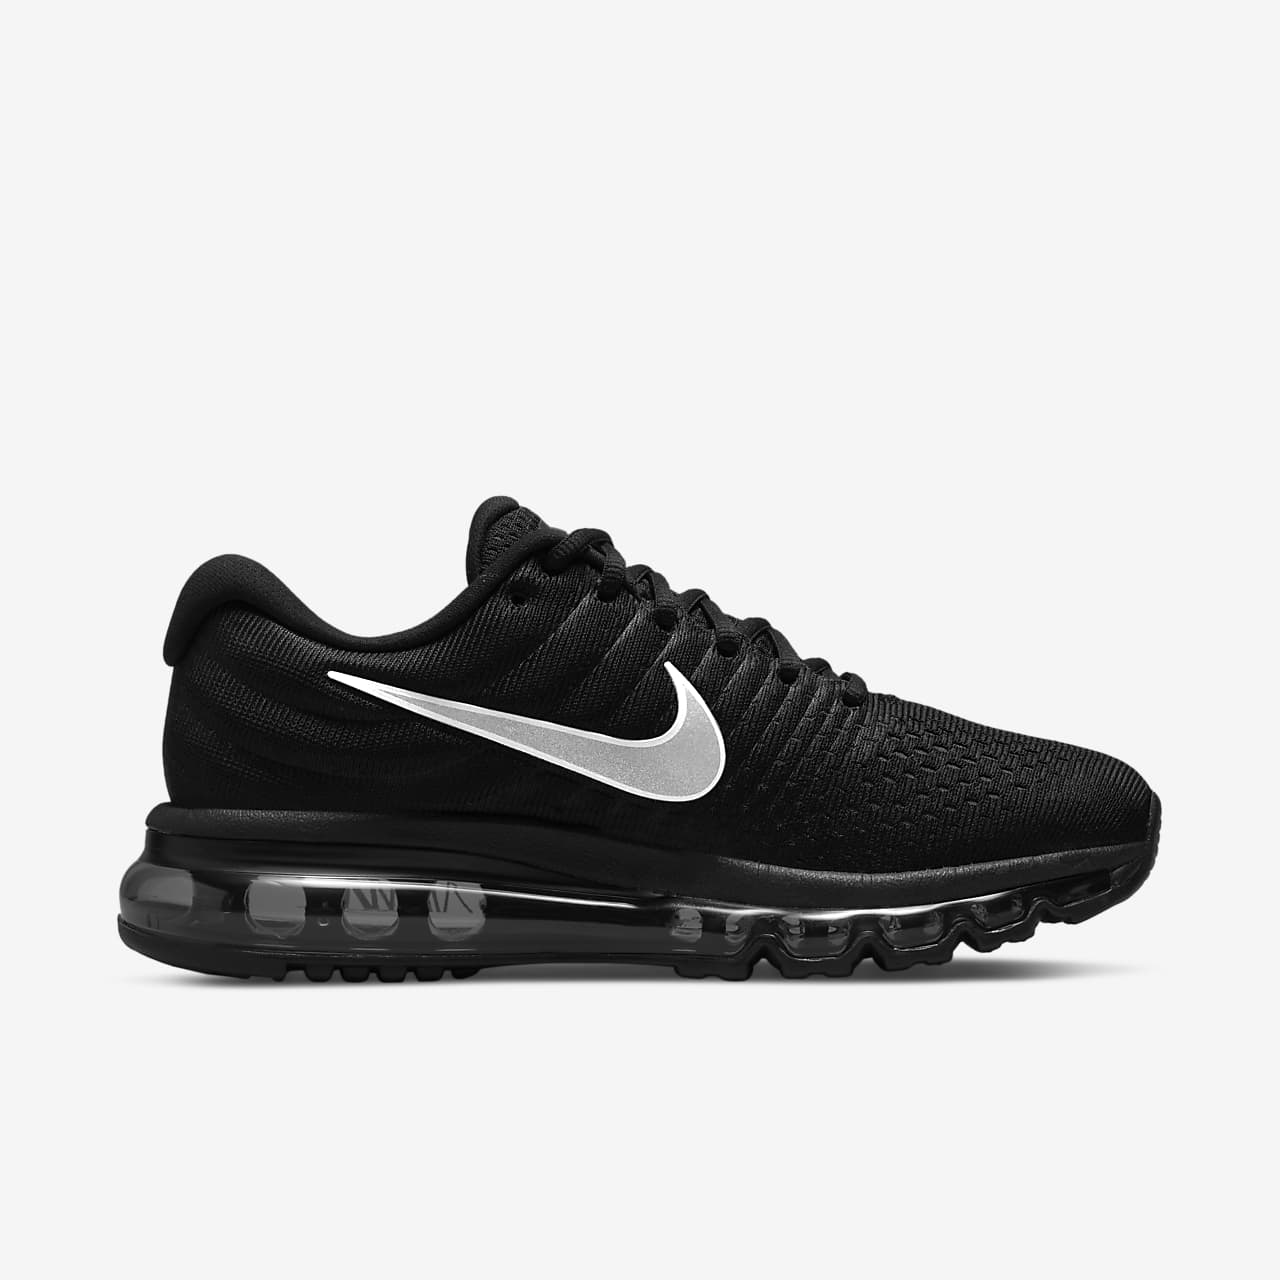 ... Nike Air Max 2017 Women's Running Shoe